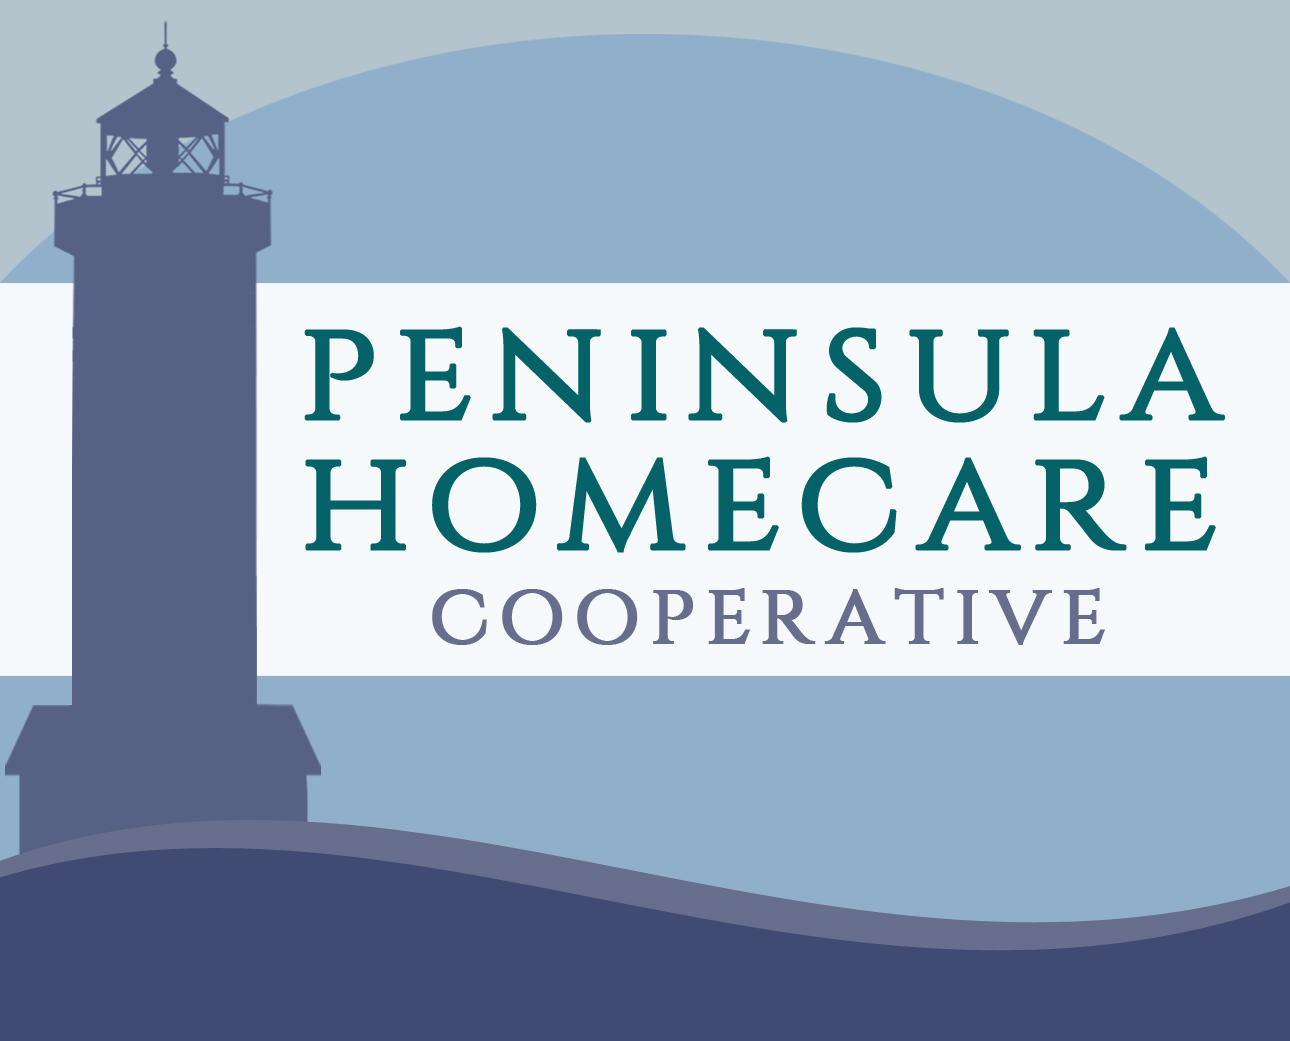 Peninsula Homecare Cooperative